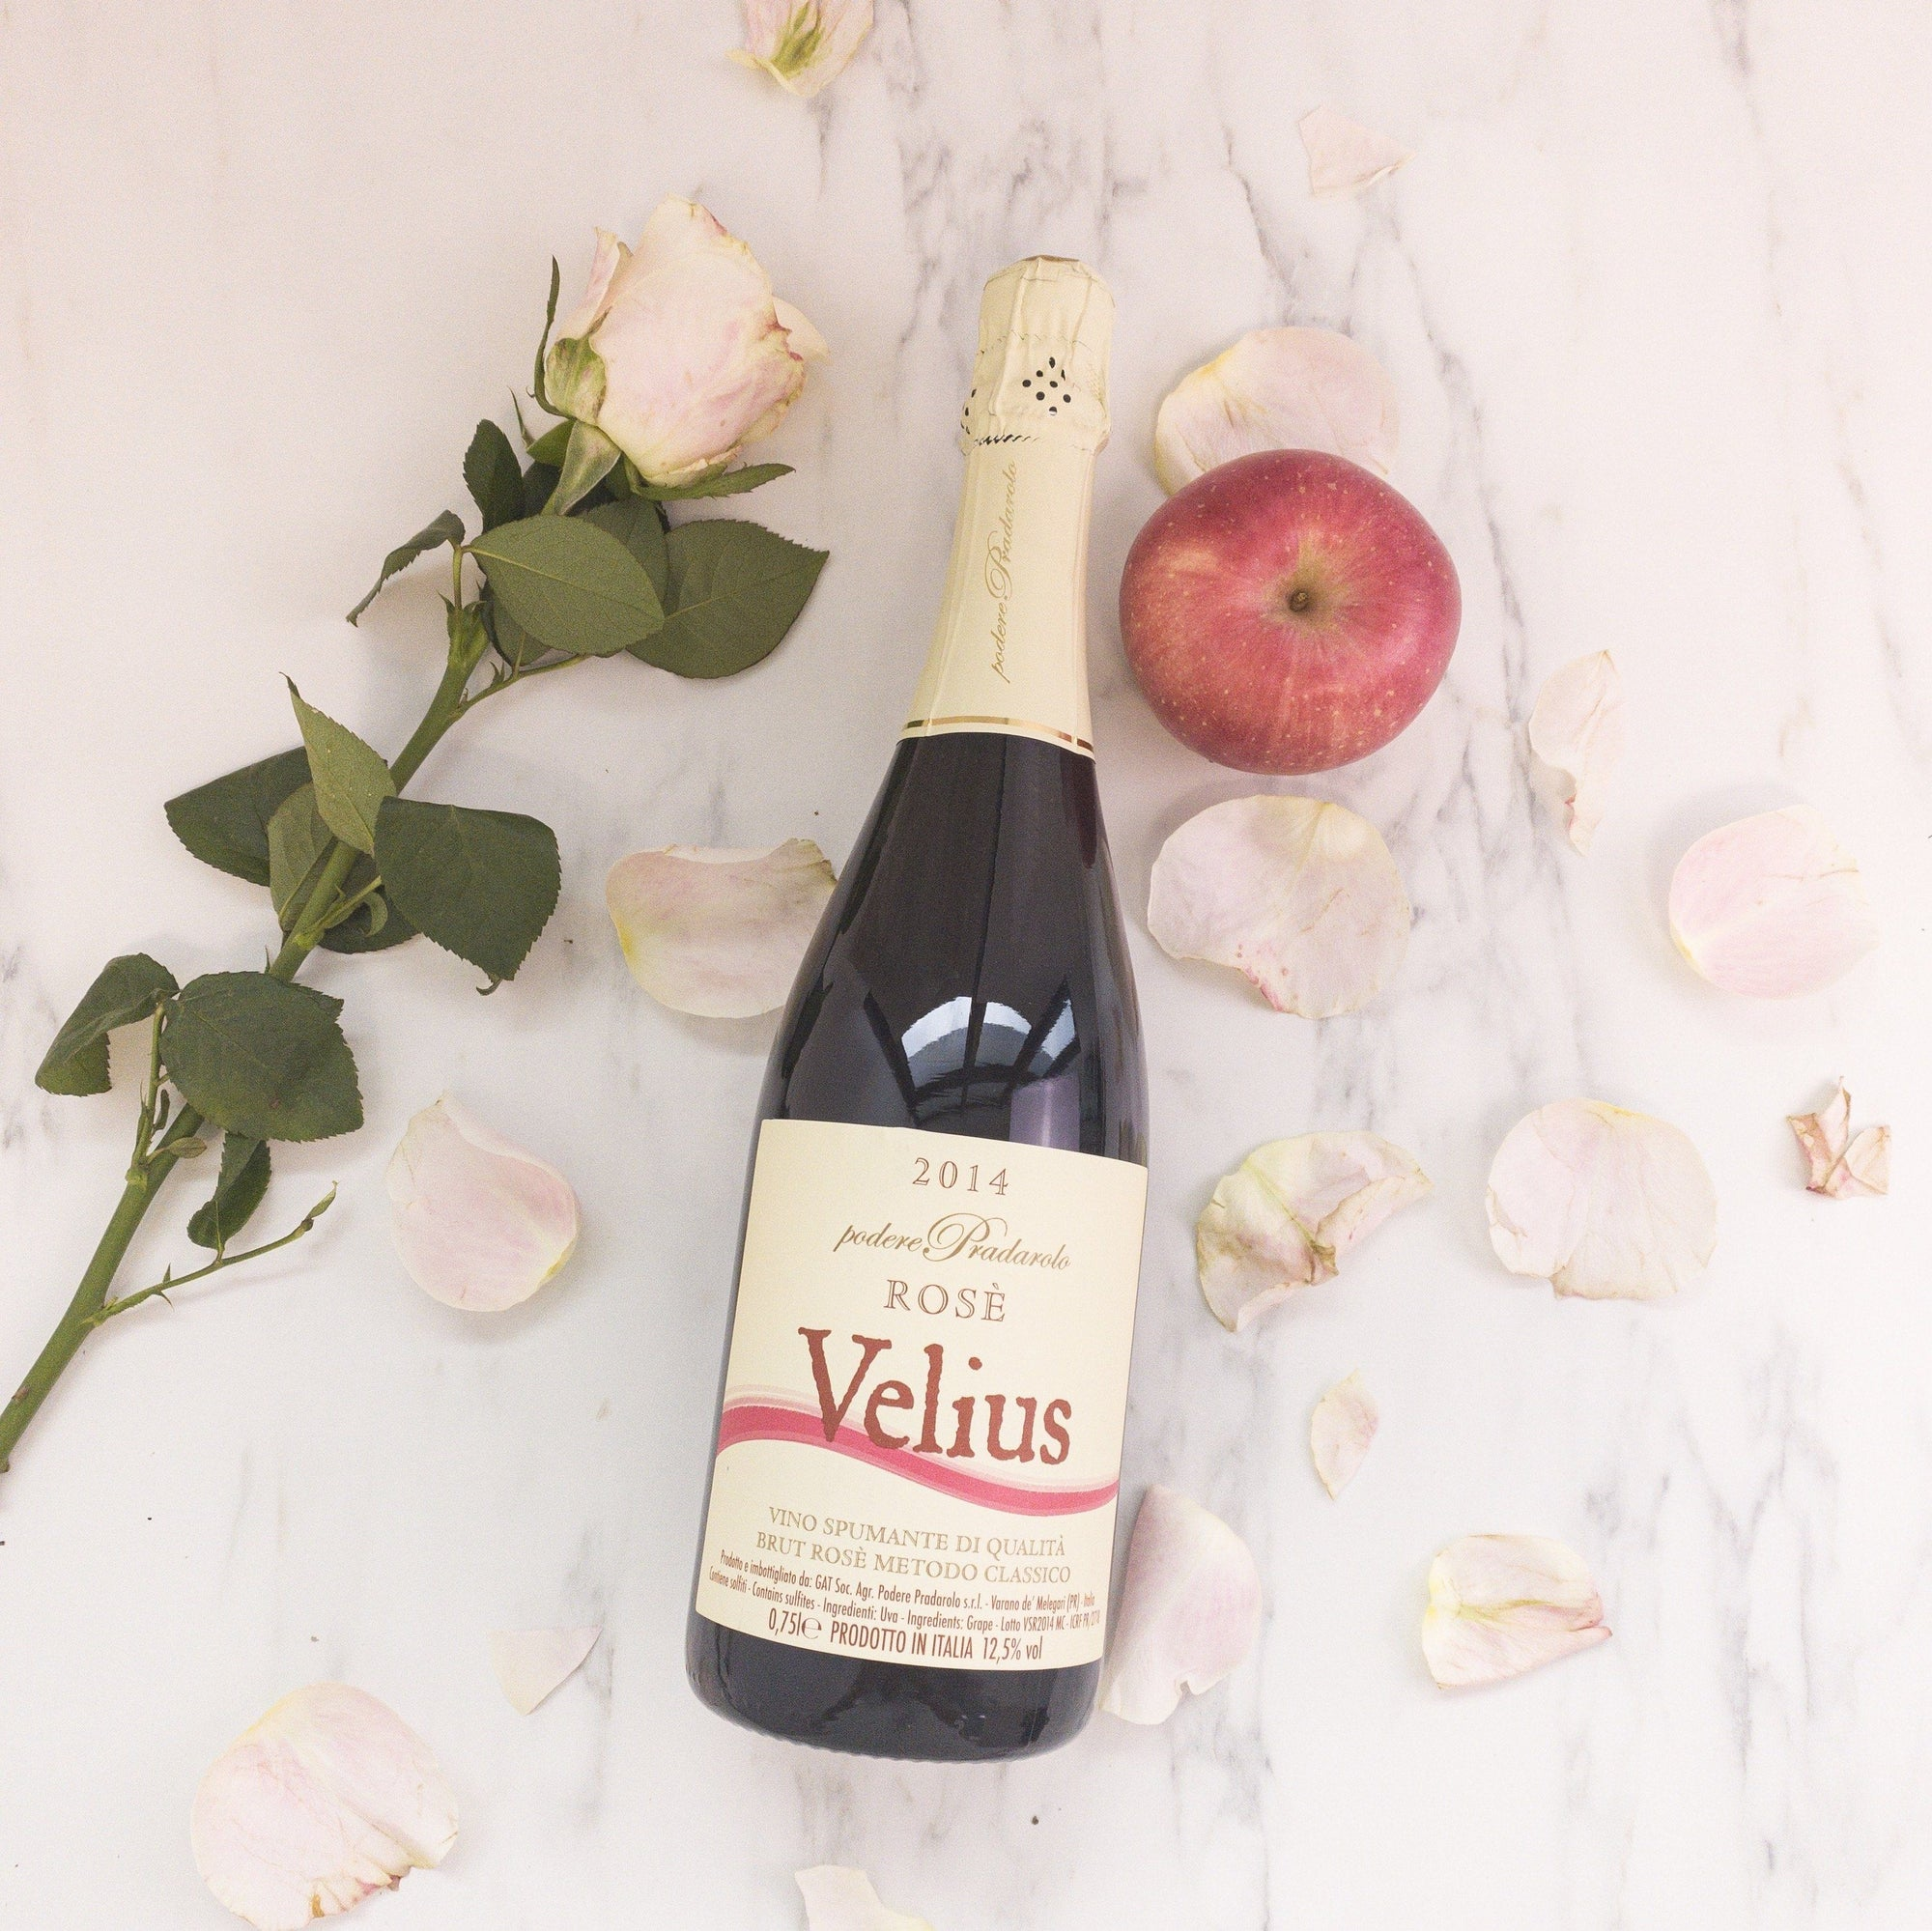 Velius Rose, a natural rose from Italy that is a juicy, fresh and a guaranteed favourite